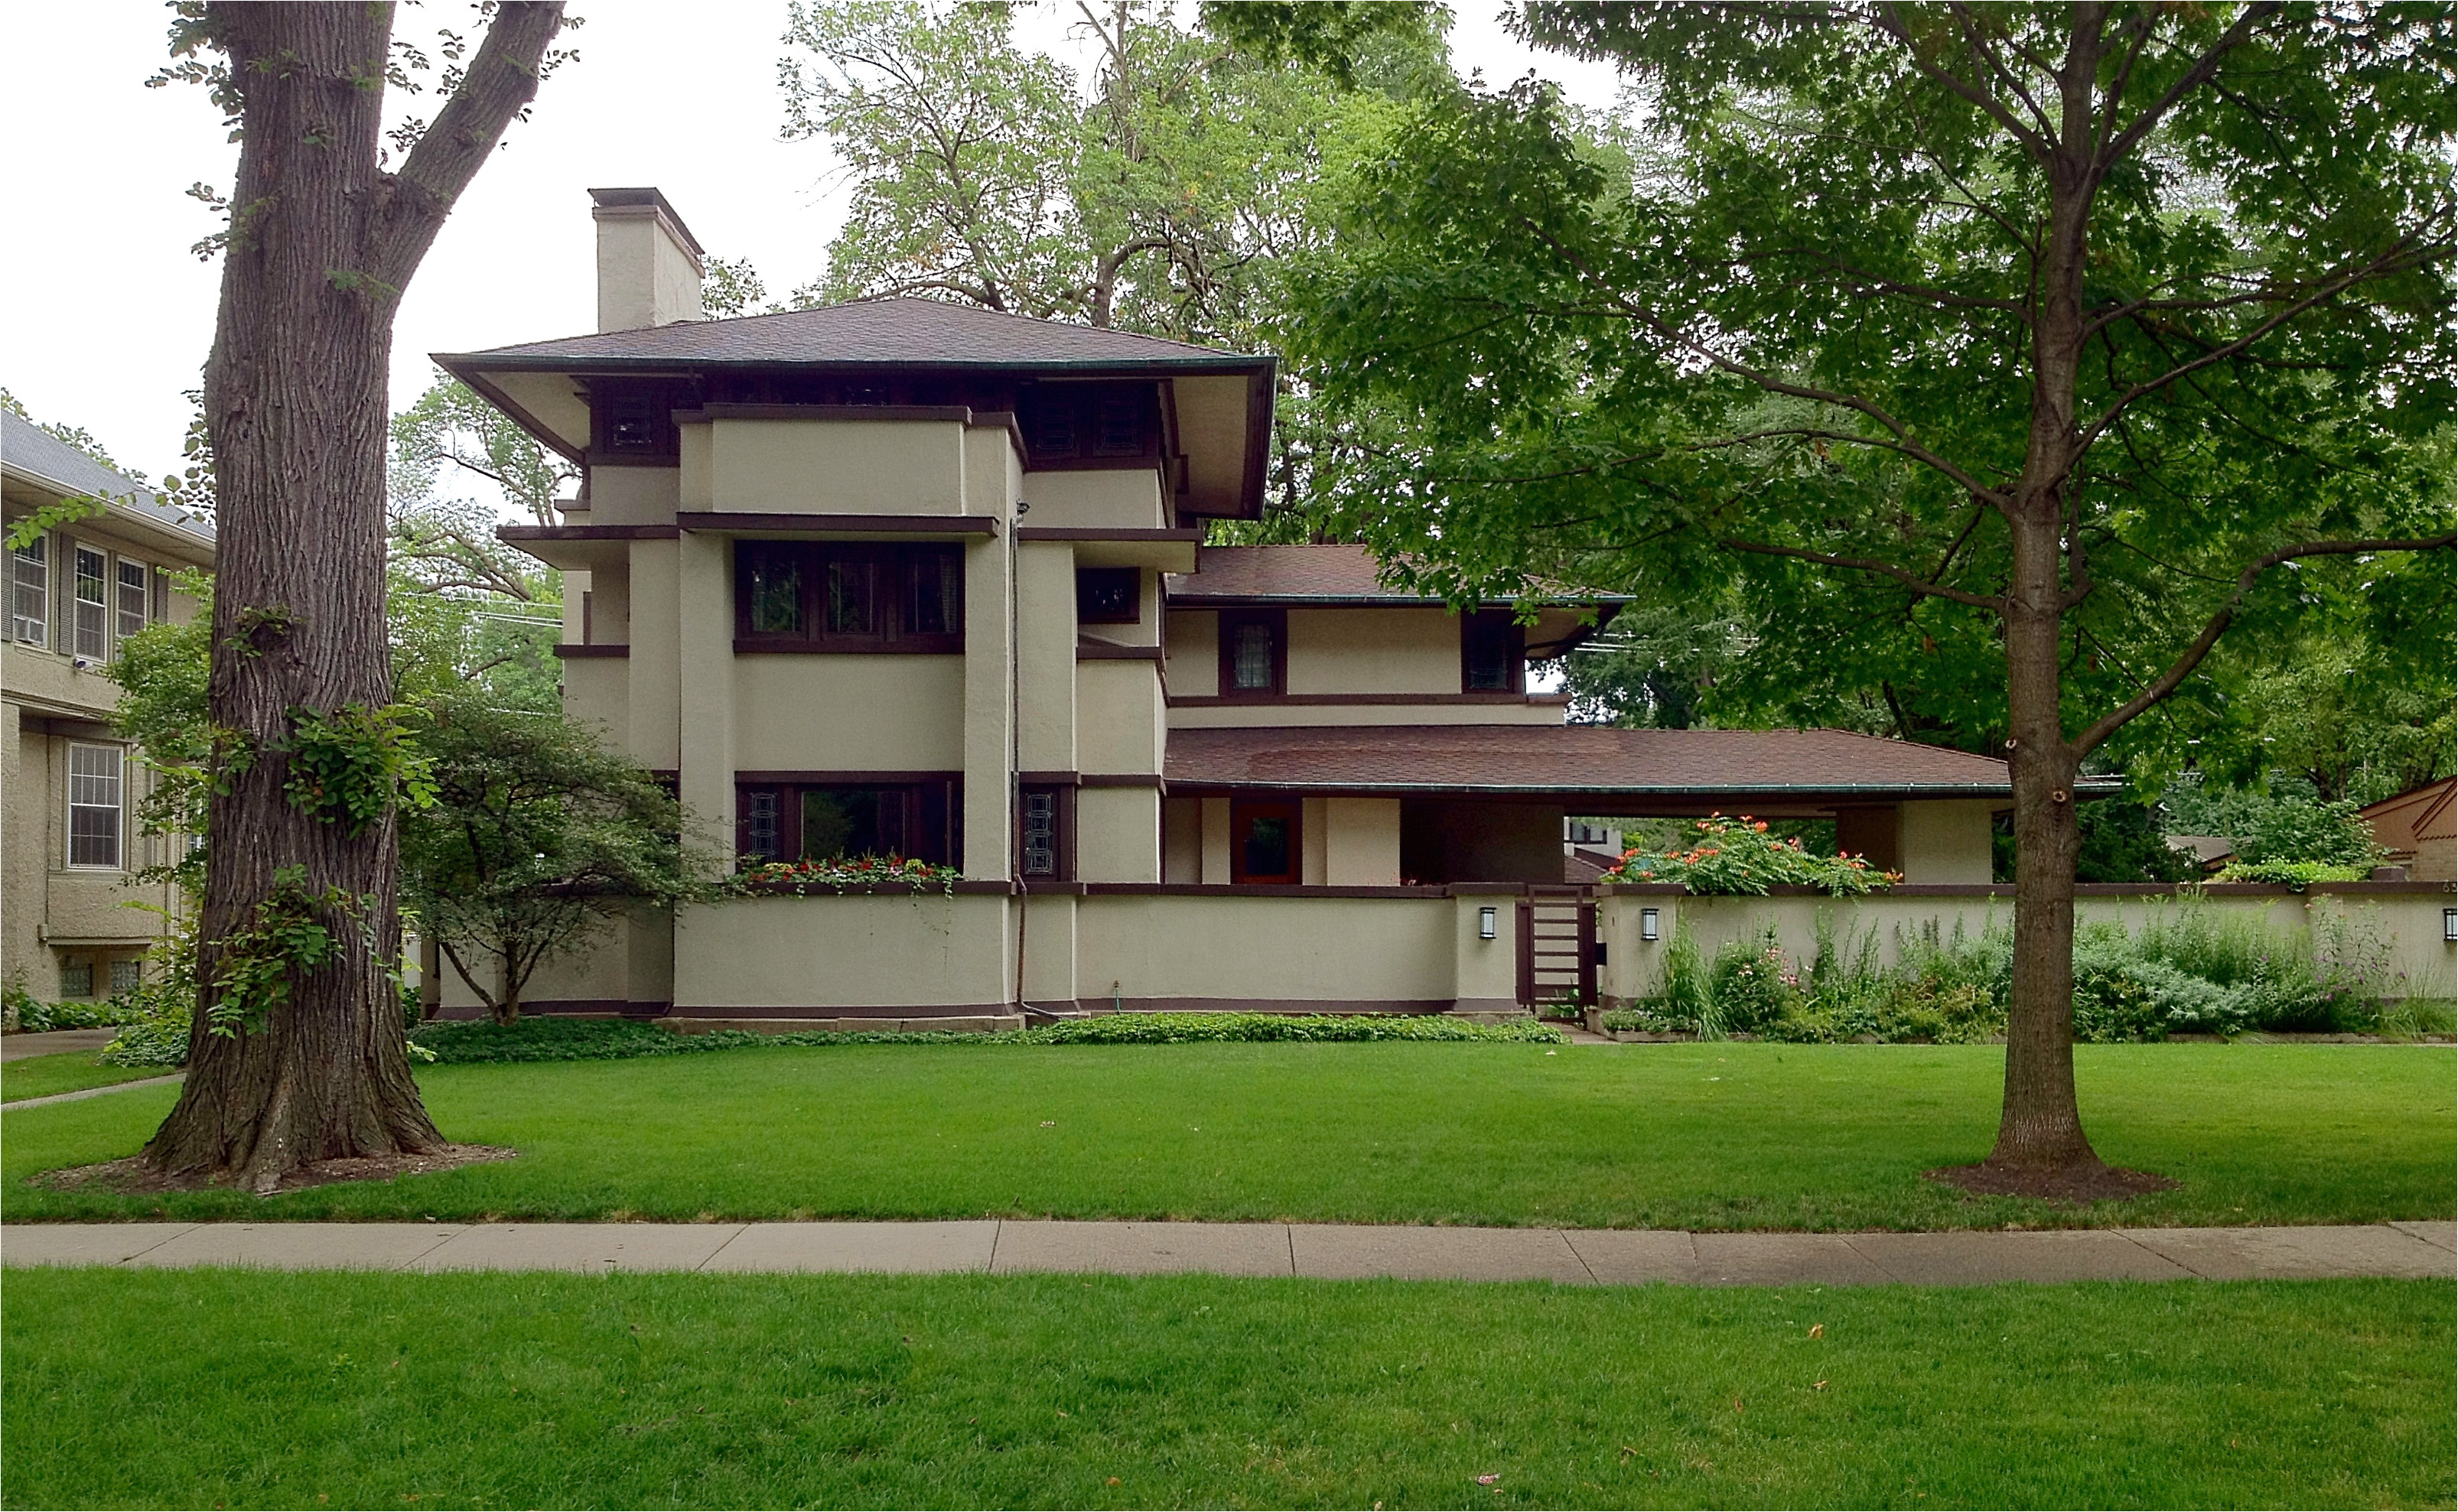 frank lloyd wright oak park 1900 1913